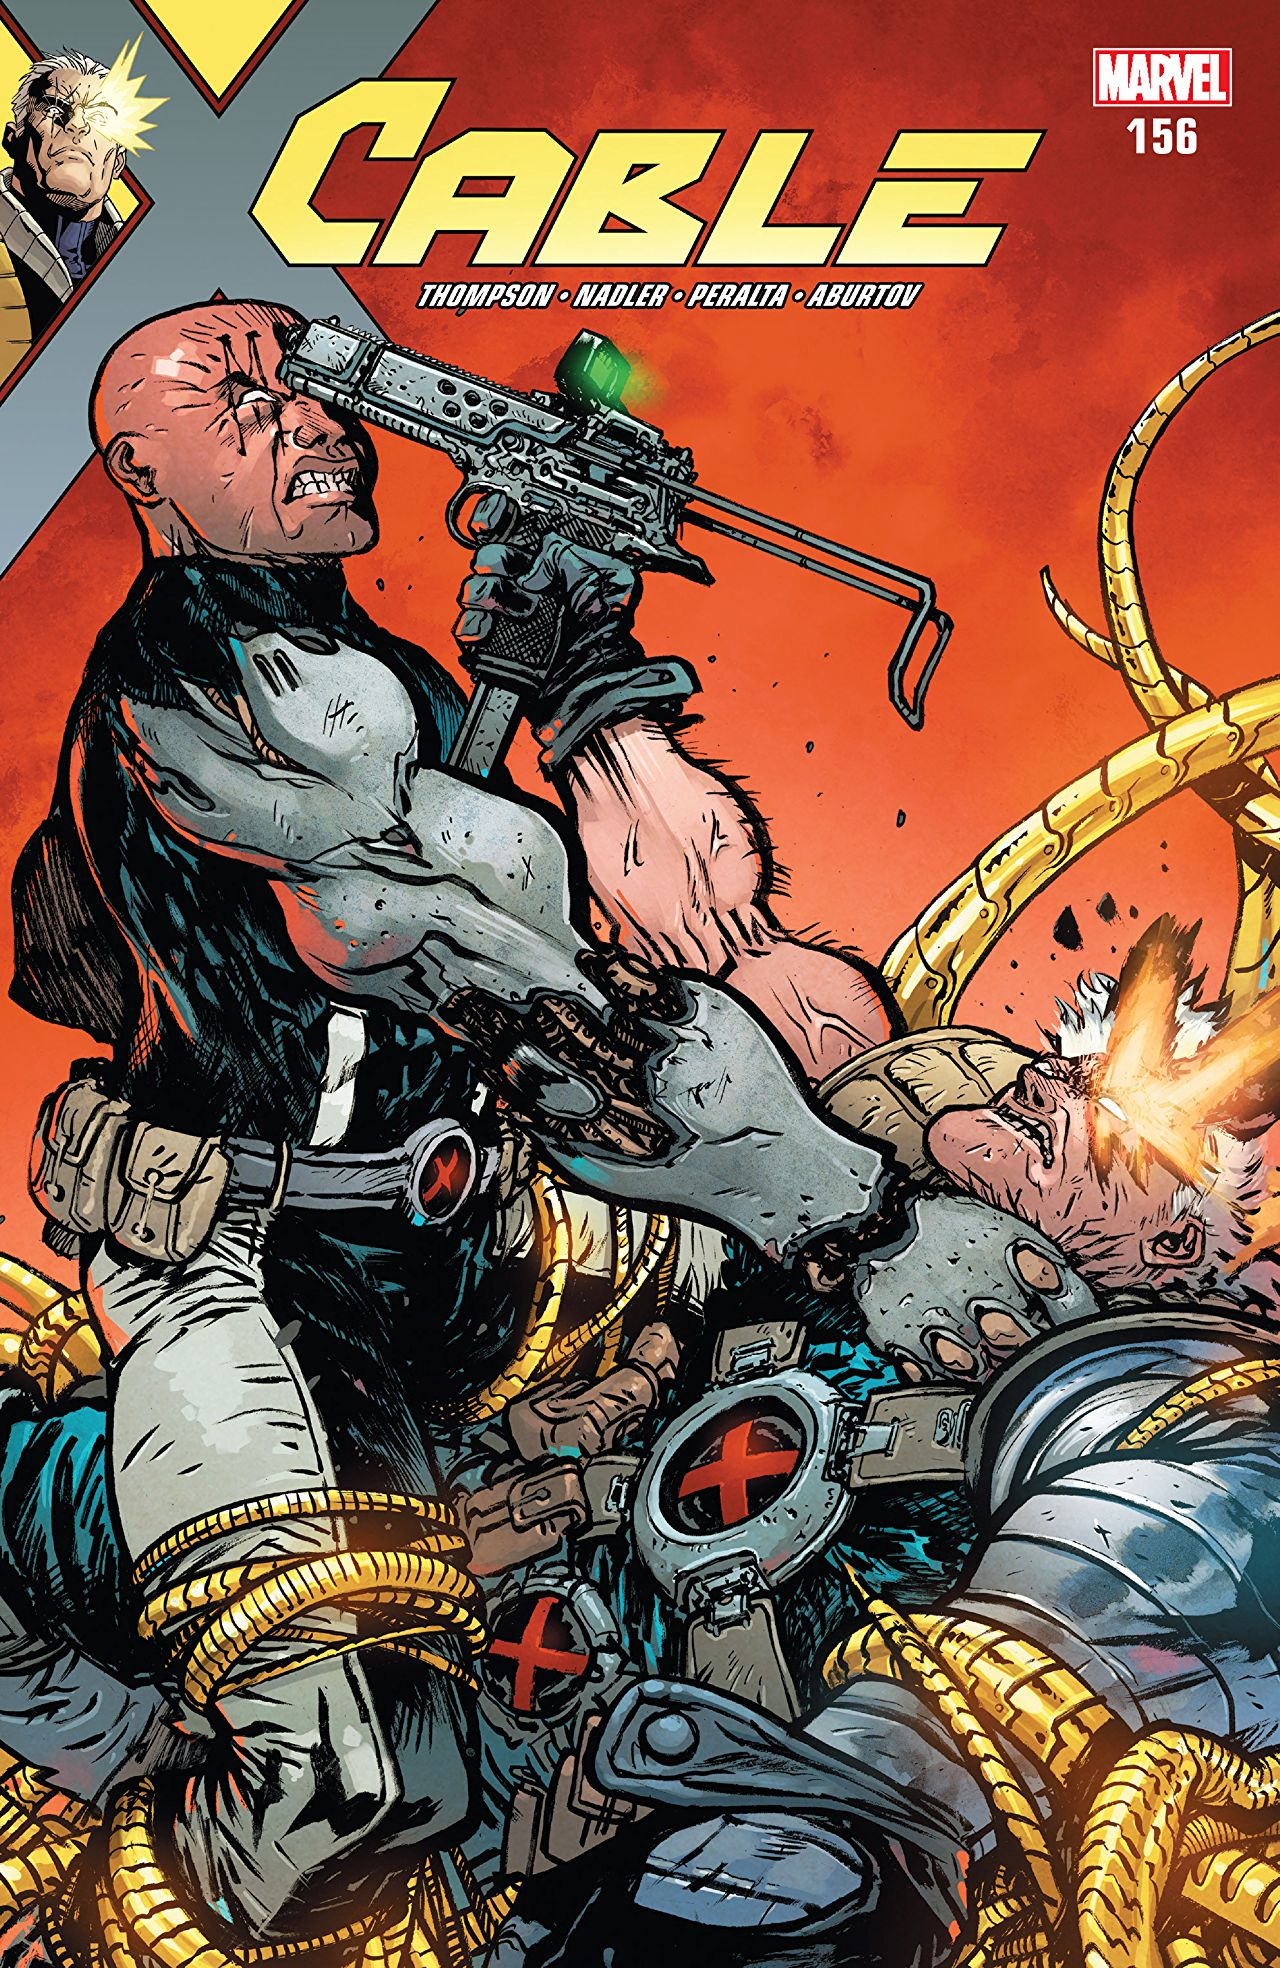 Zac Thompson confirms 'Cable' is cancelled after July's issue